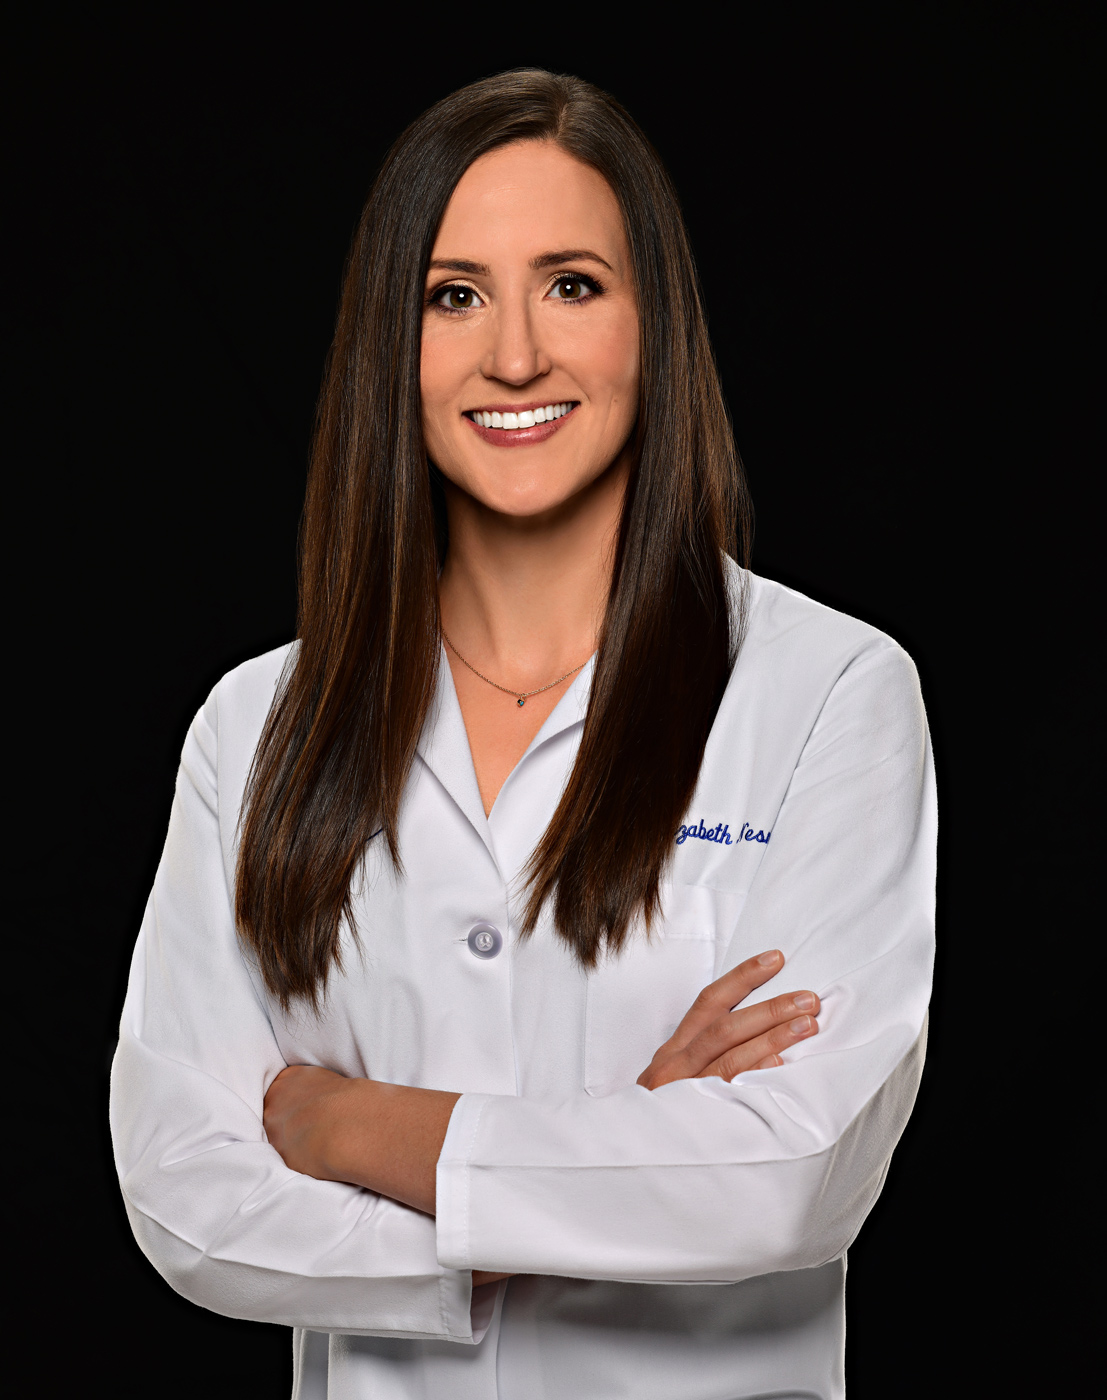 headshot of oral surgeon doctor dentist